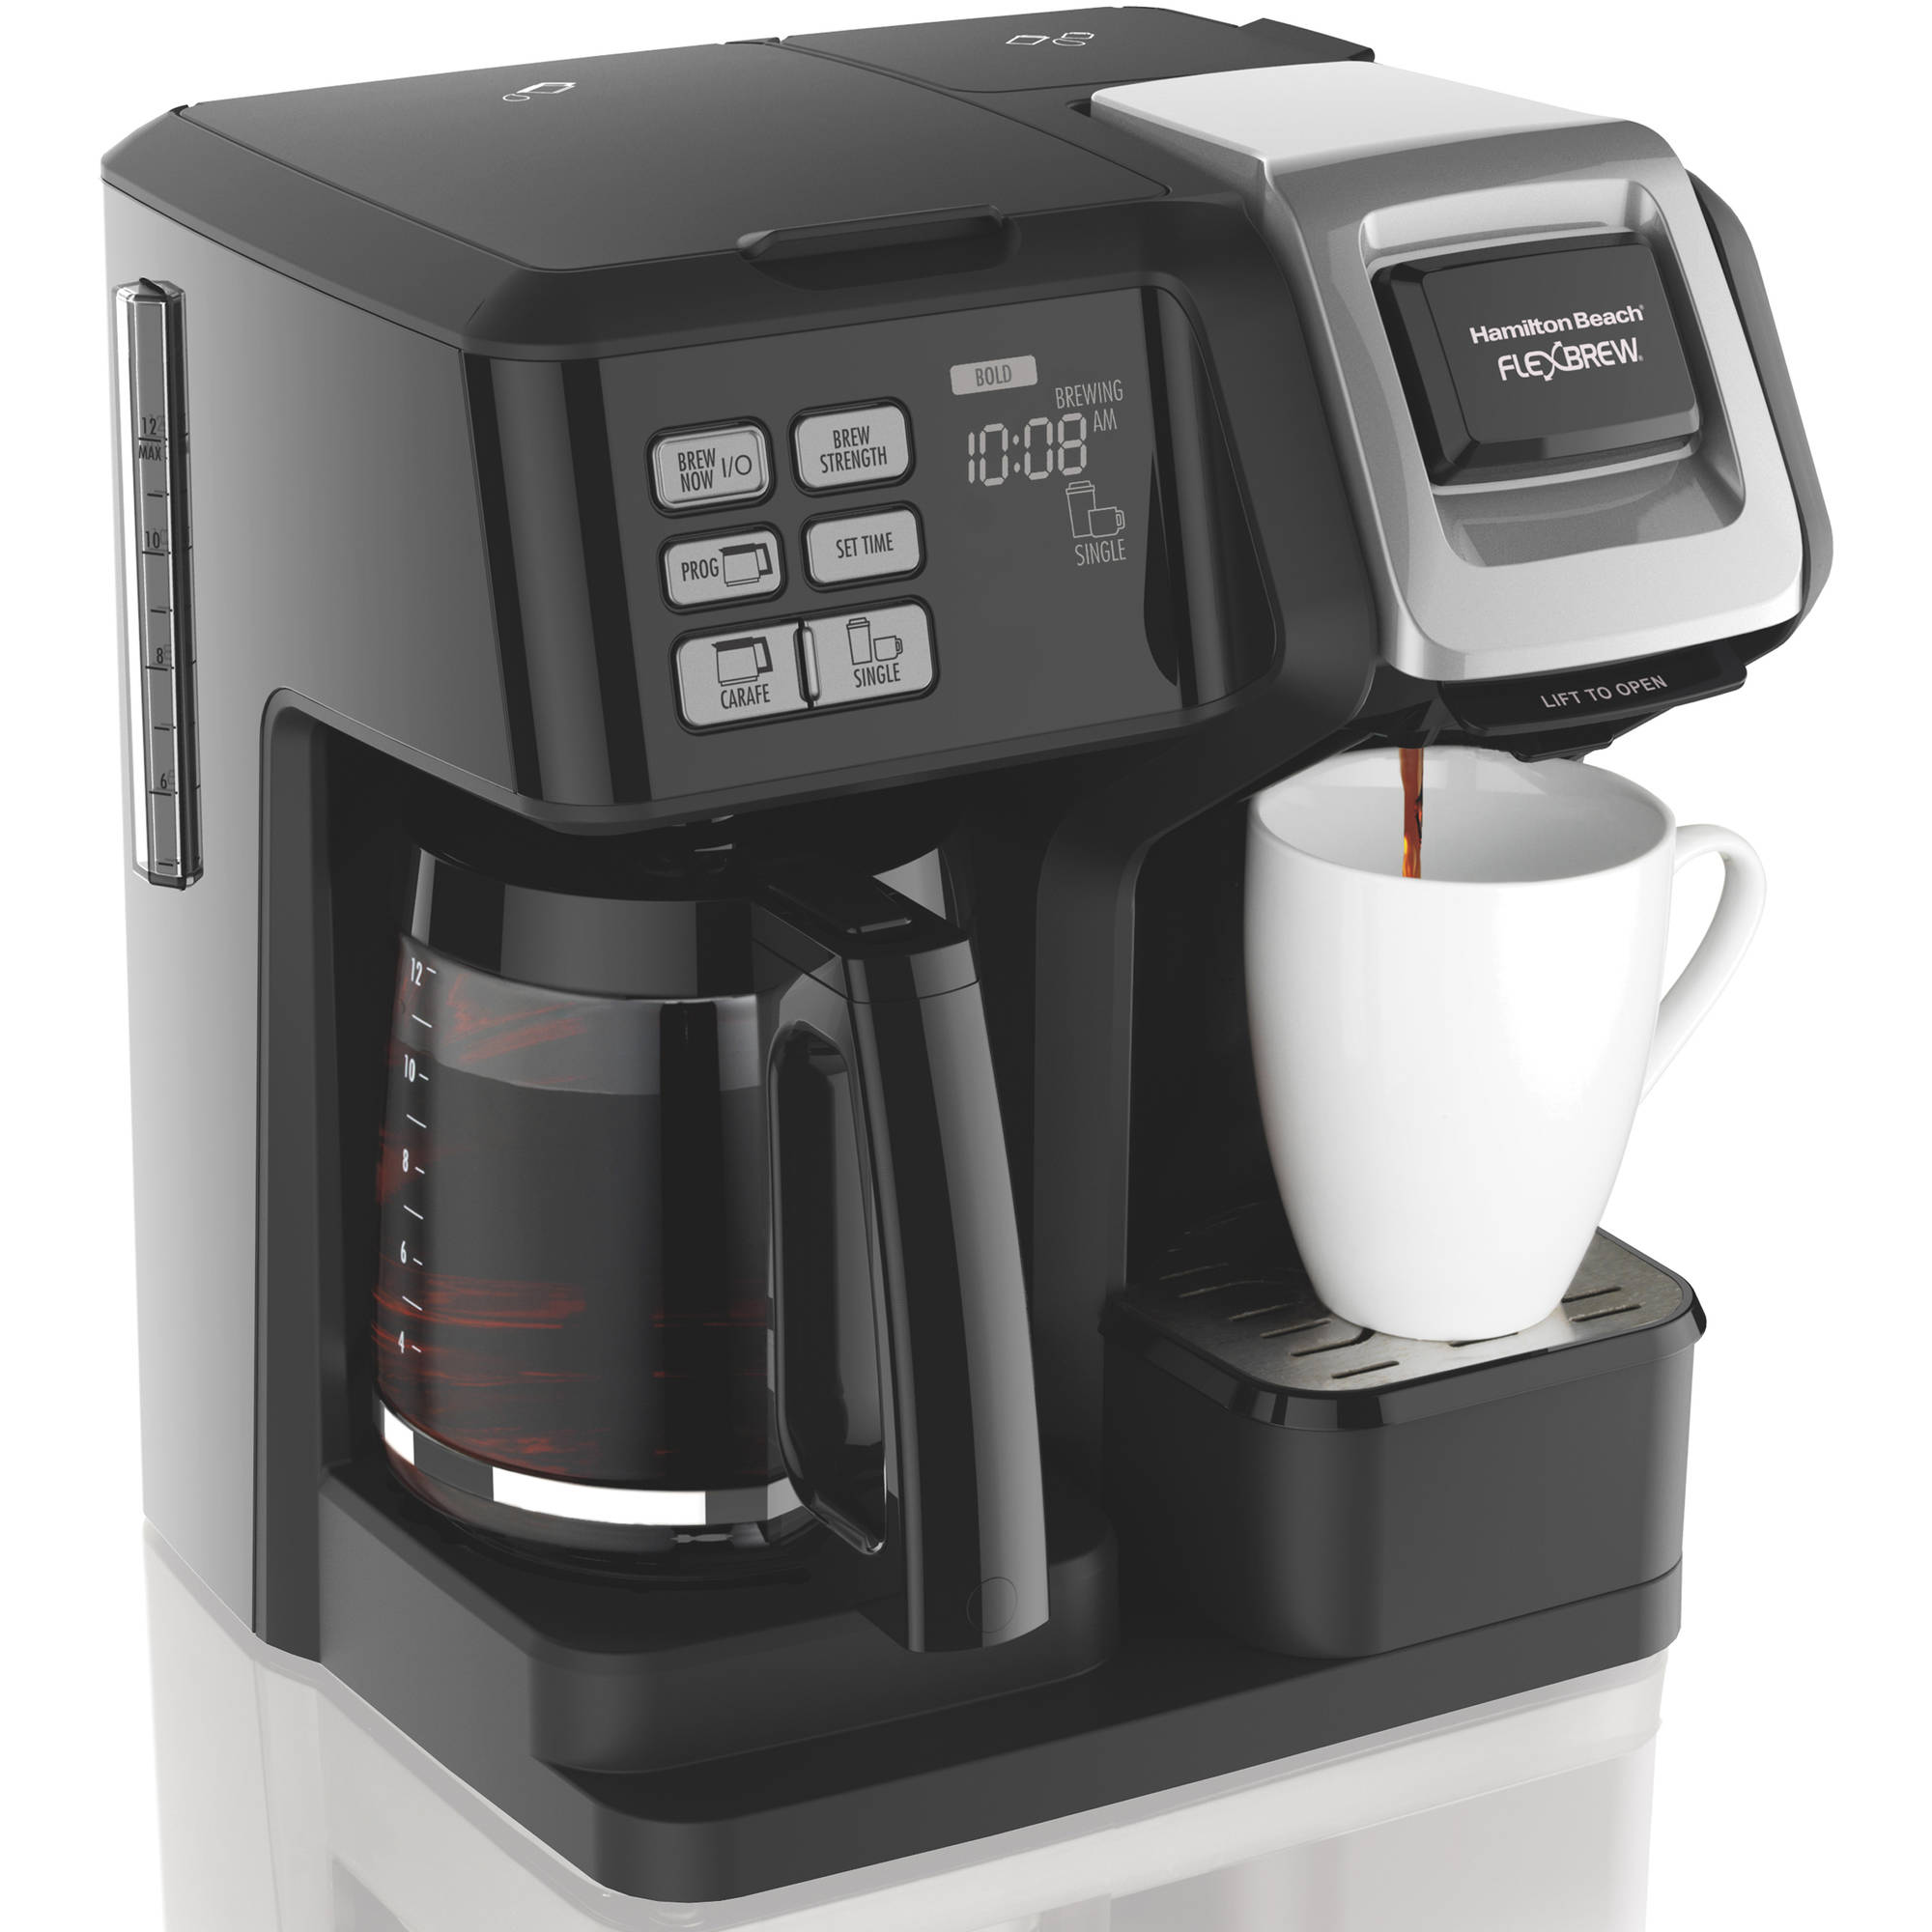 Hamilton Beach FlexBrew 2 Way Coffee Maker | Model# 49976